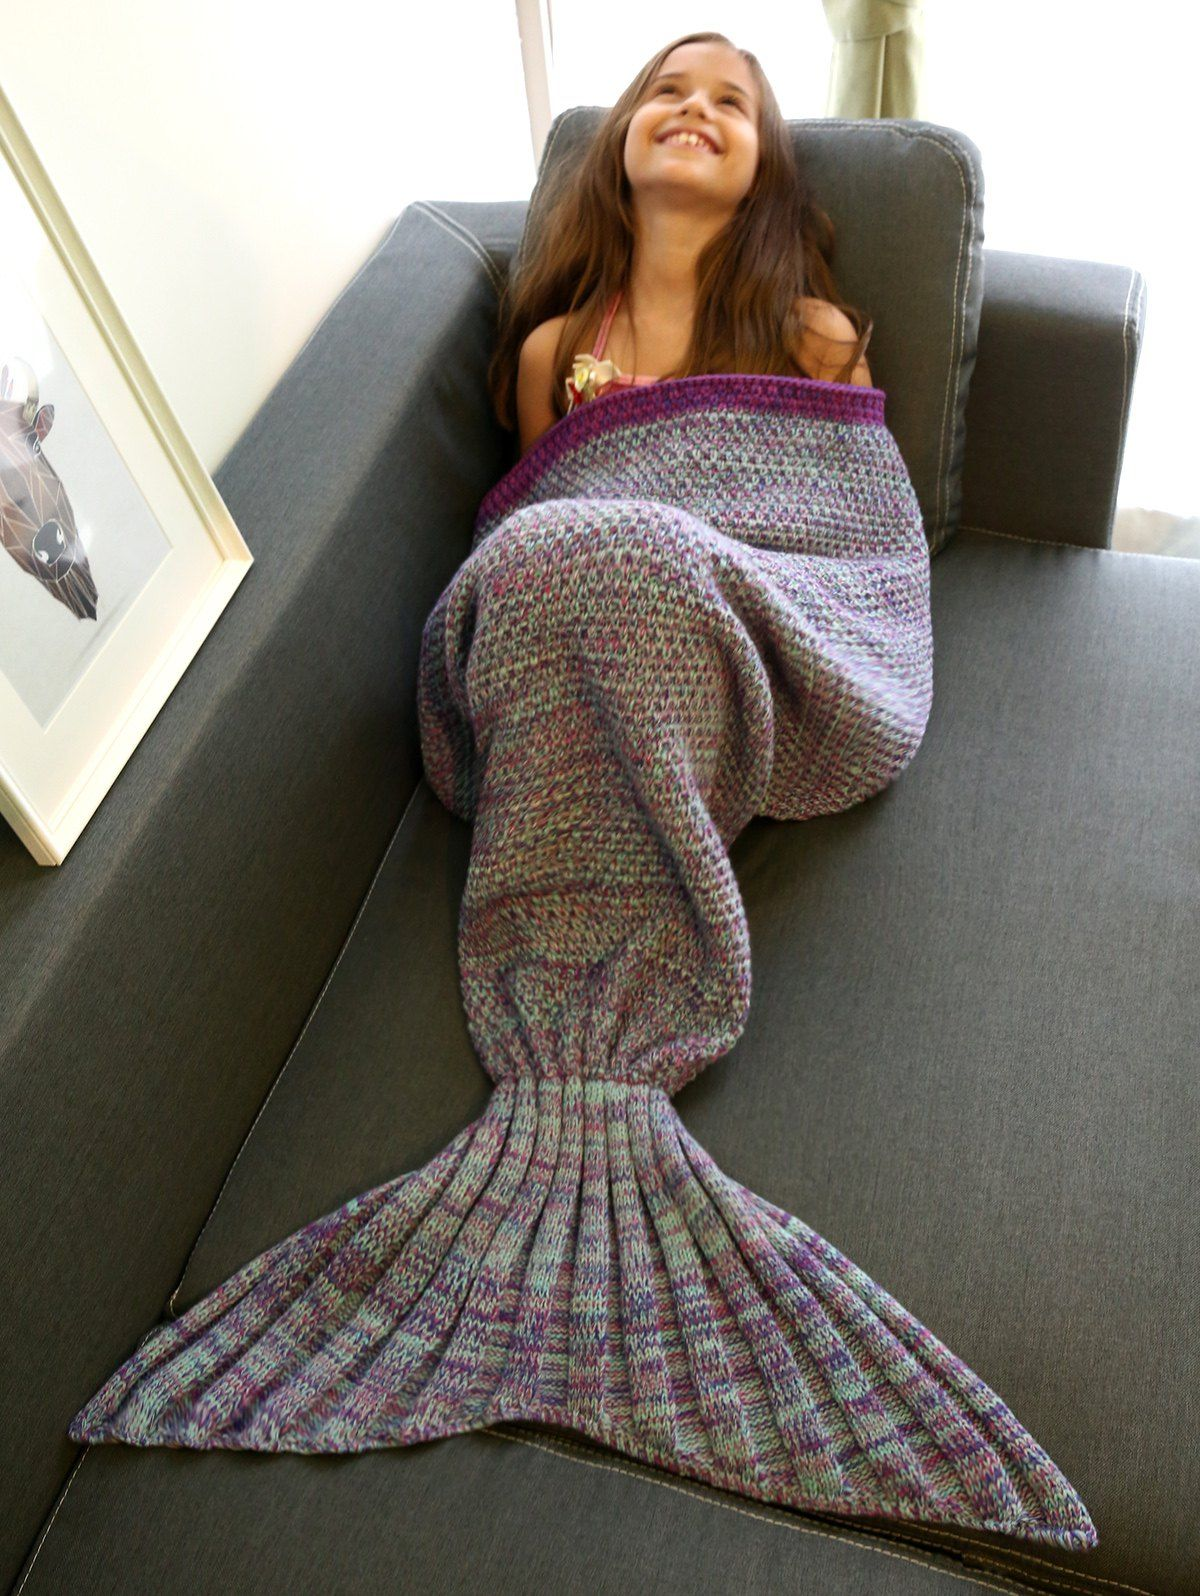   Black Friday Sale: Extra 15% OFF Using Code SAMMY2016   Super Soft Multi-Colored Knitted Mermaid Tail Design Blanket For Kid in Colormix   Sammydress.com